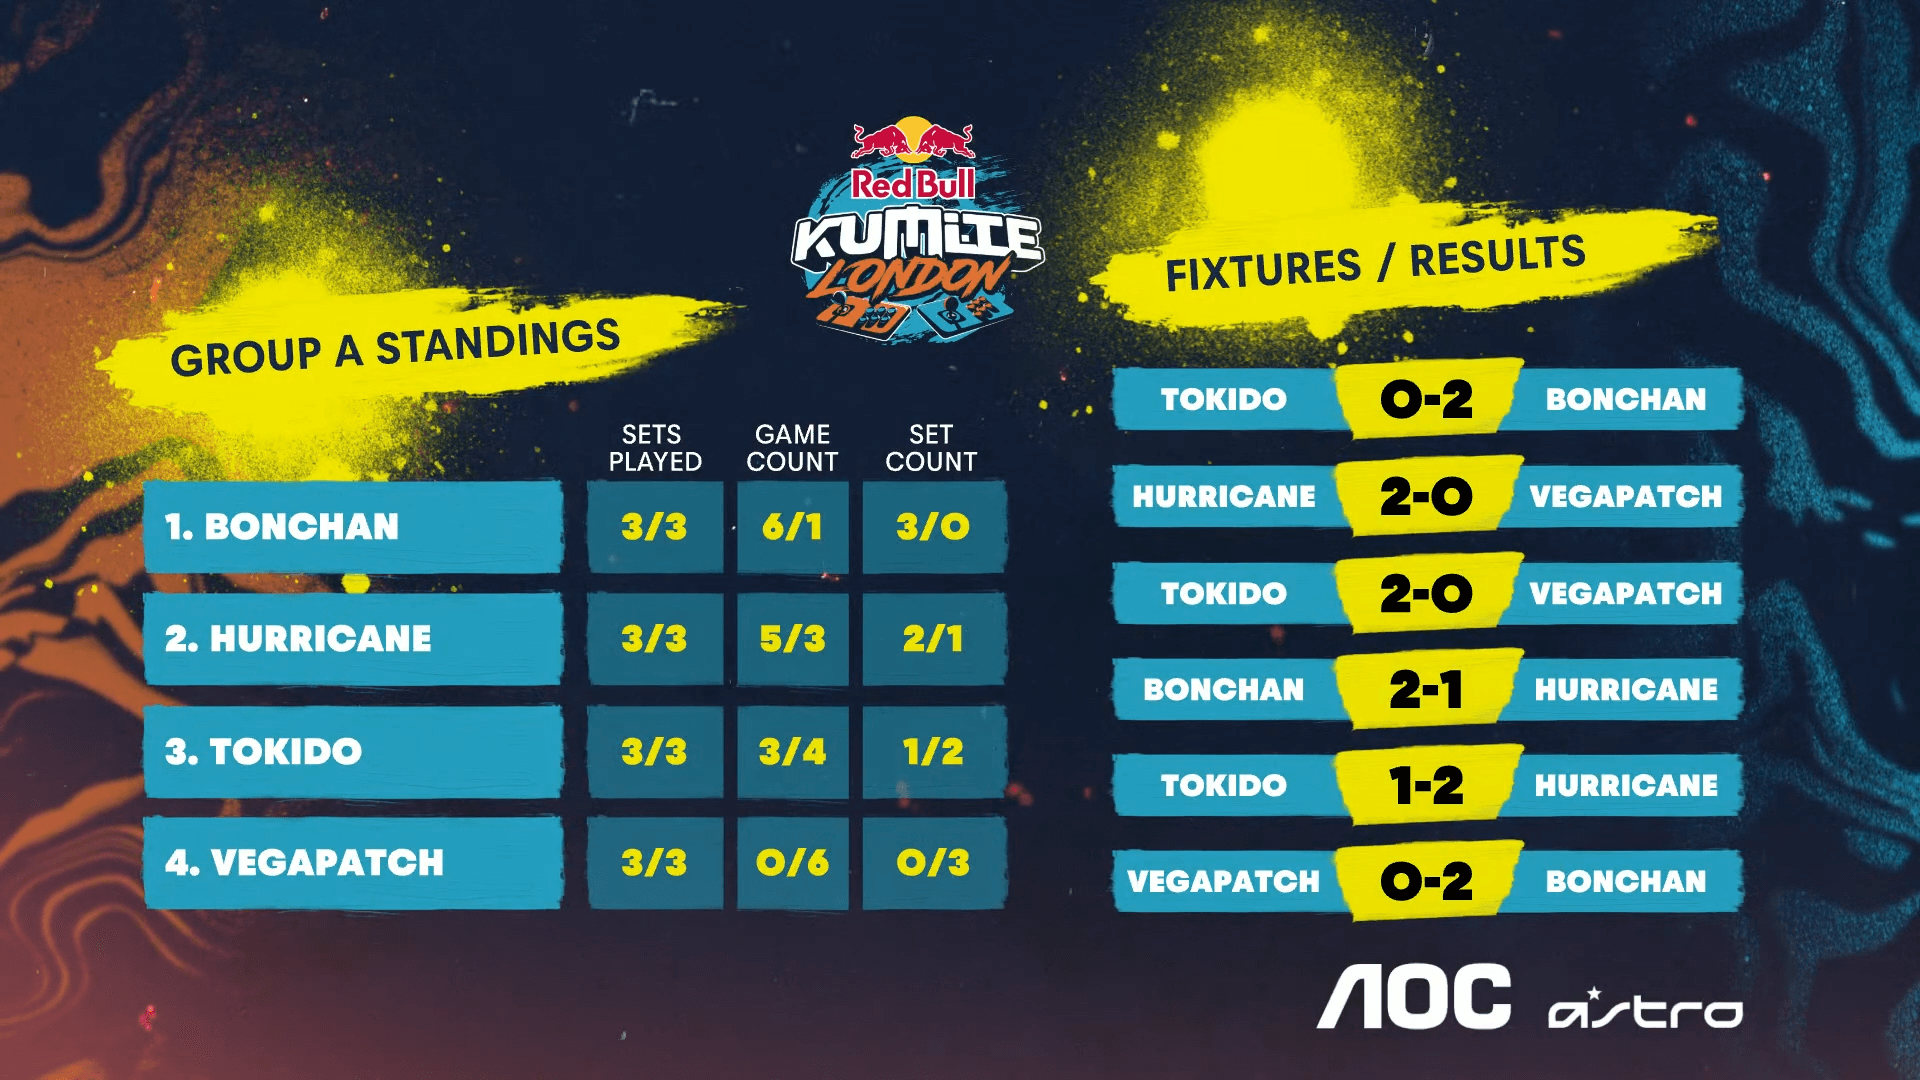 Street Fighter V esports — Red Bull Kumite London — Group A results